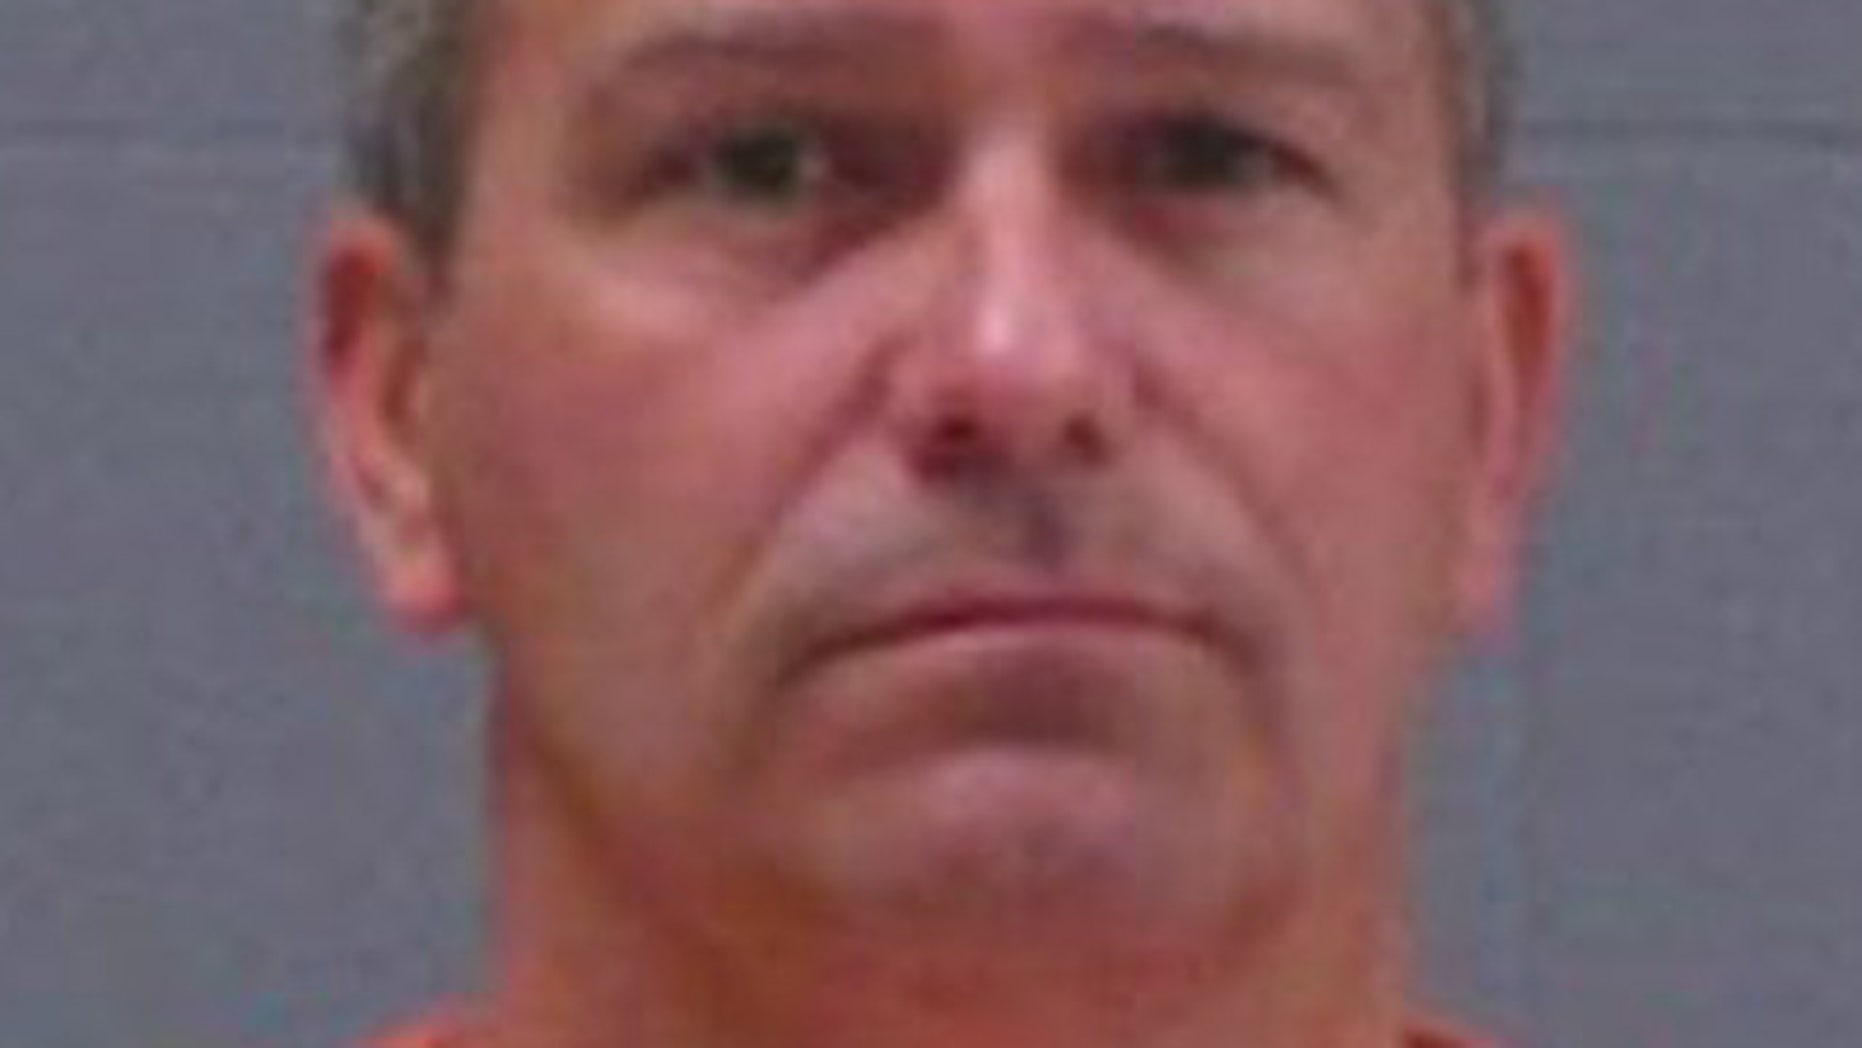 Aug. 22, 2012: This photo provided by the Blue Earth County Sheriff's Office shows Todd Hoffner, head football coach at Minnesota State, Mankato.